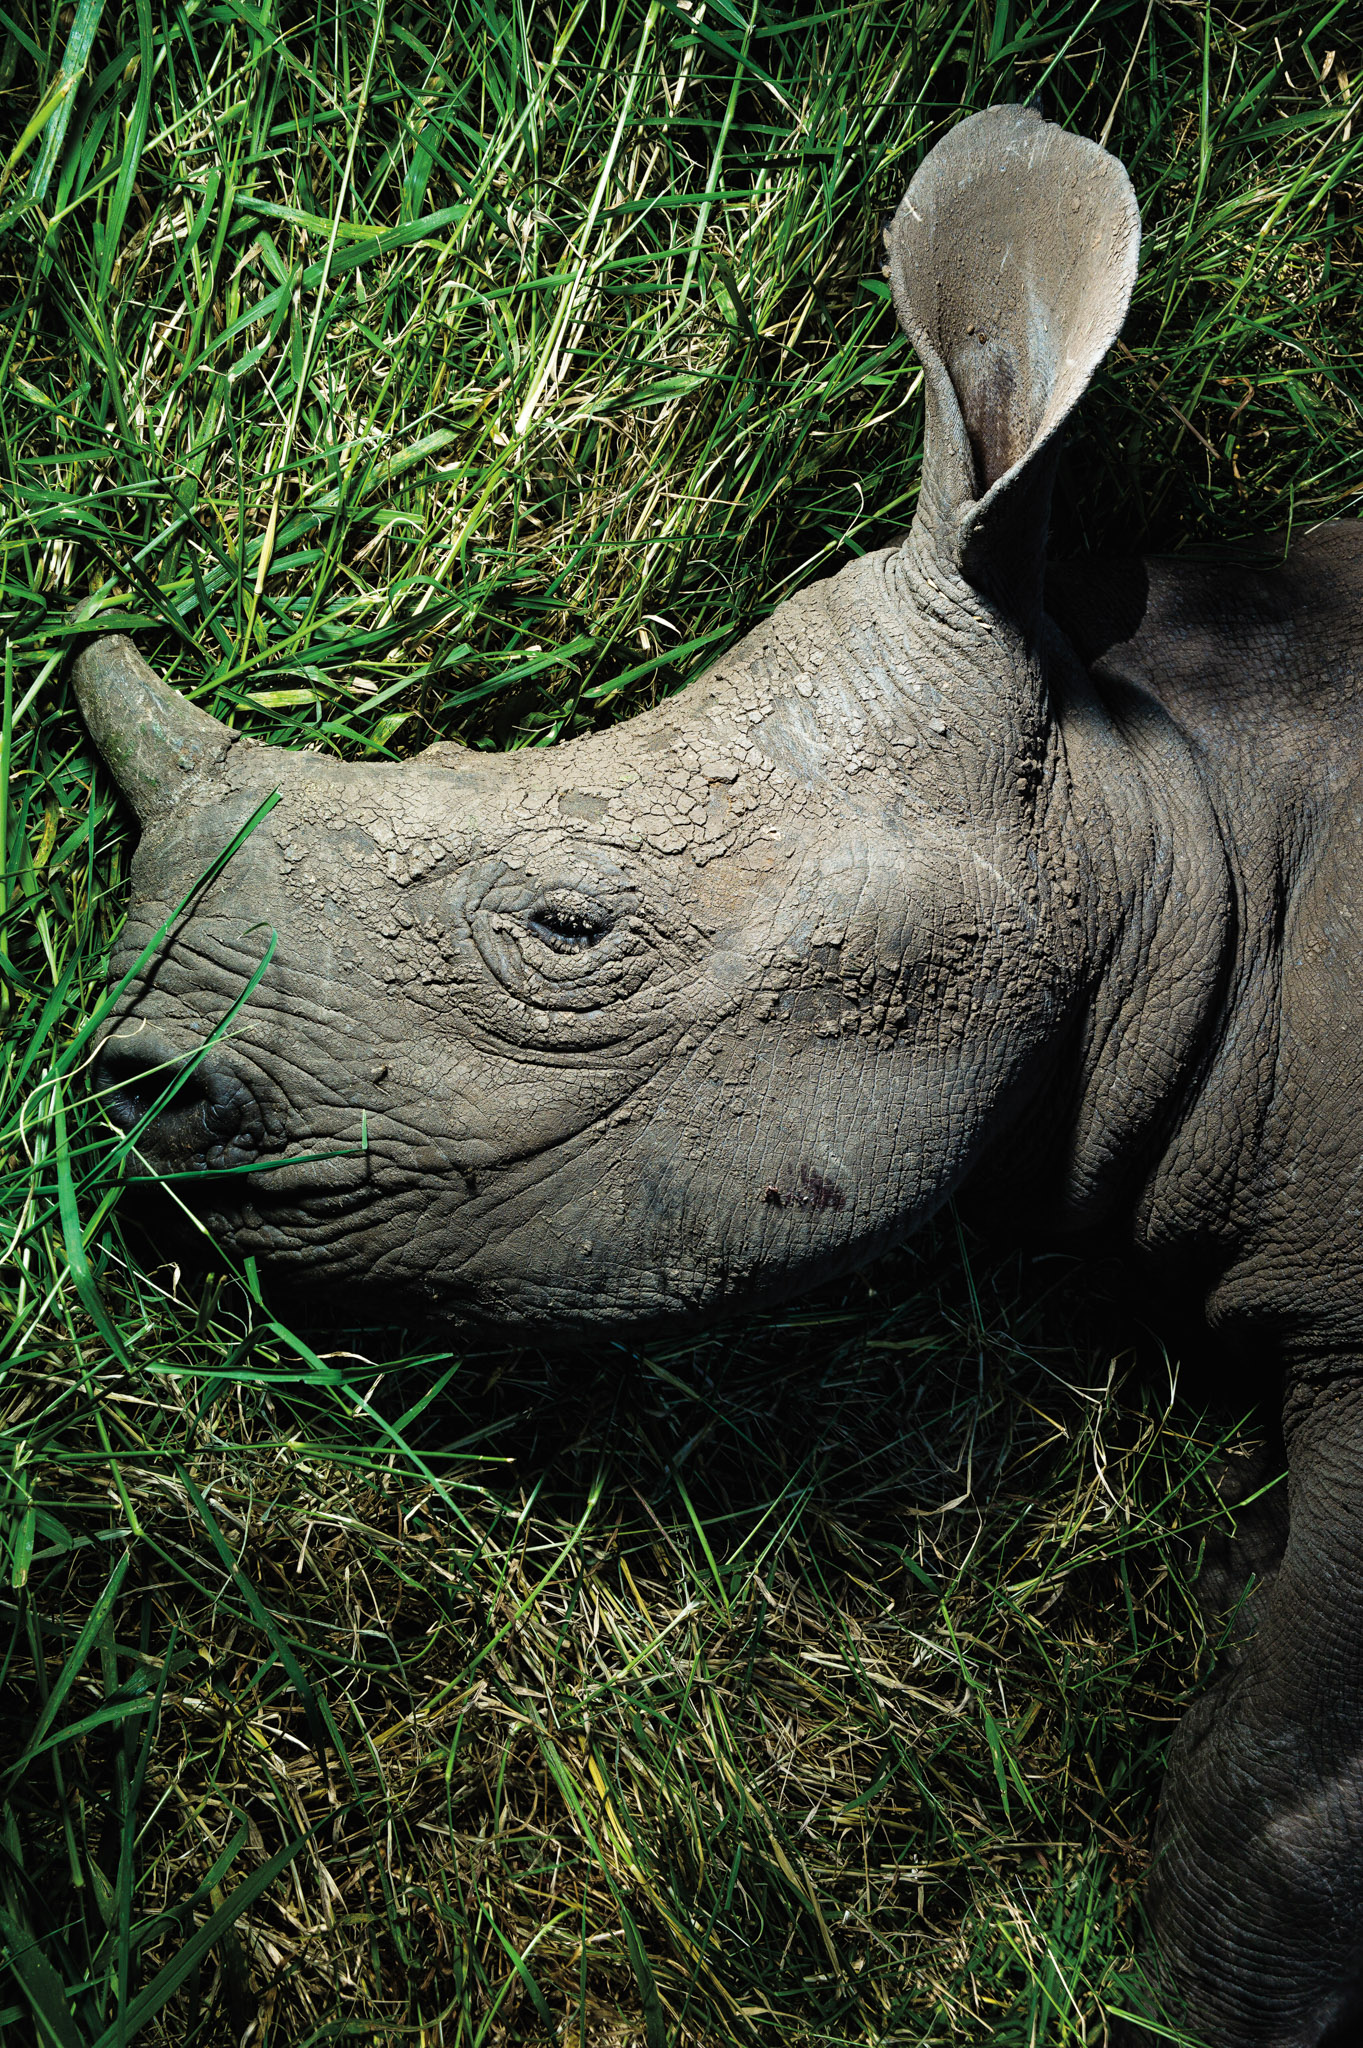 A one-year-old rhino rests in the grass, unaware of the future threats its growing horn will bring. Photograph by Erico Hiller